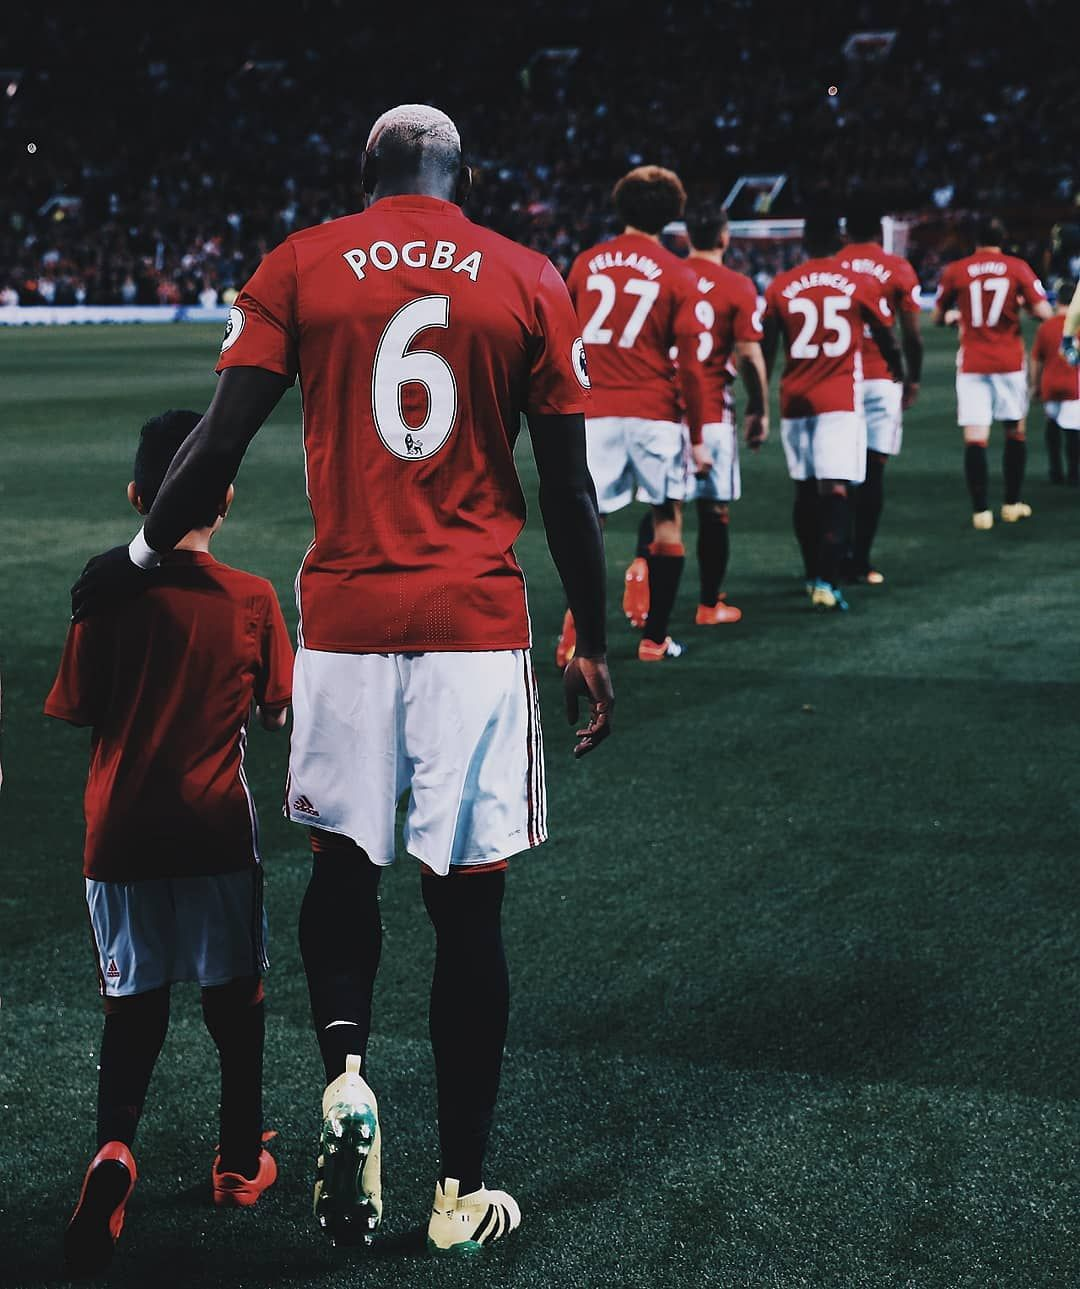 259 Best Pogba Images